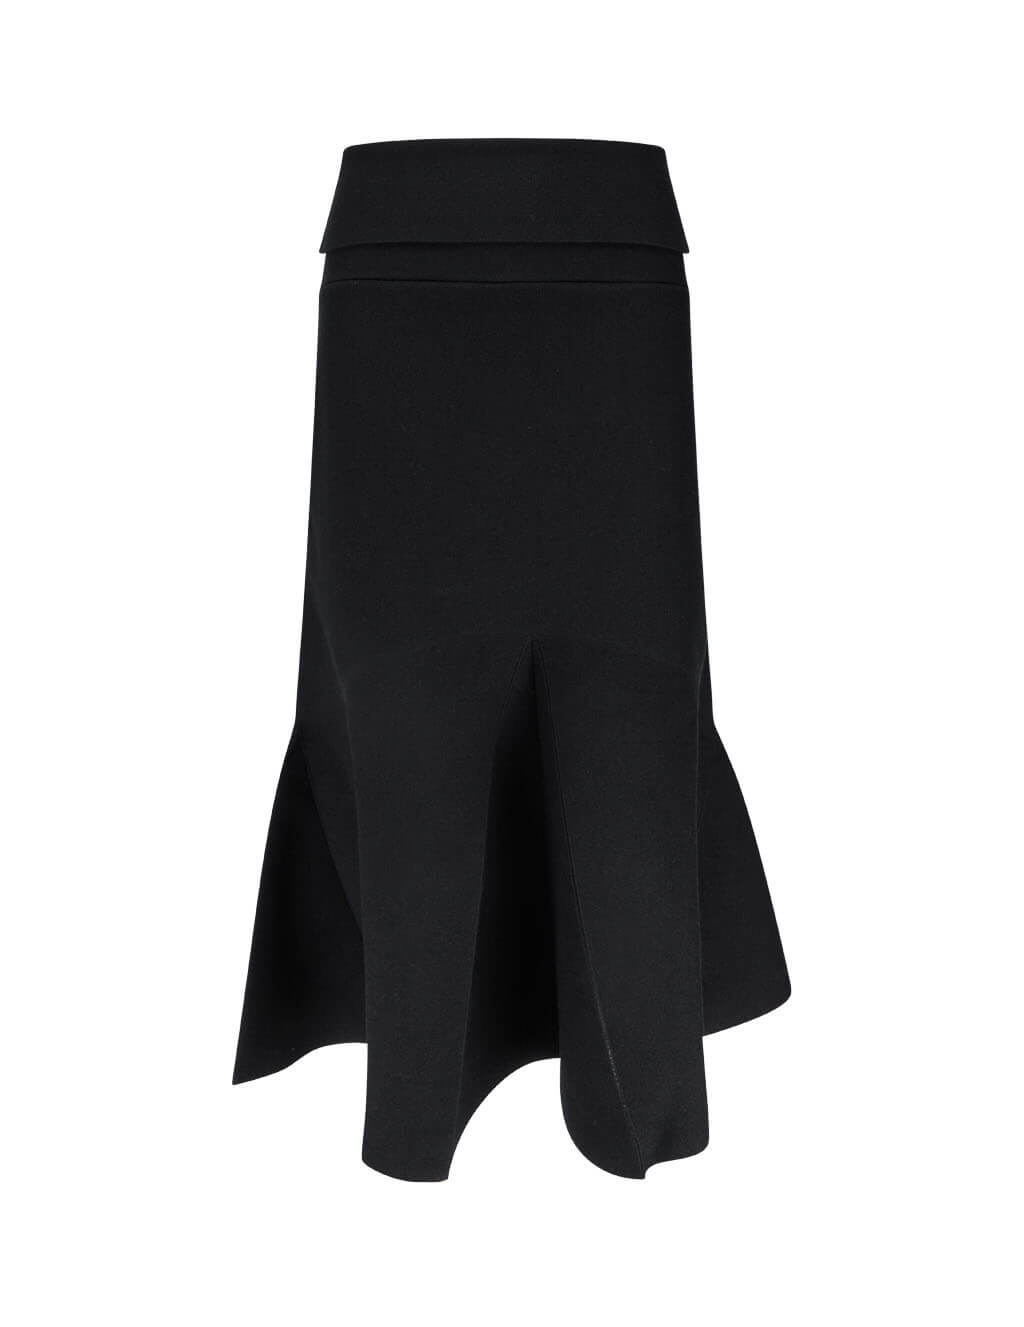 KENZO Women's Black Flared Midi Skirt FA62WJU303RG.99